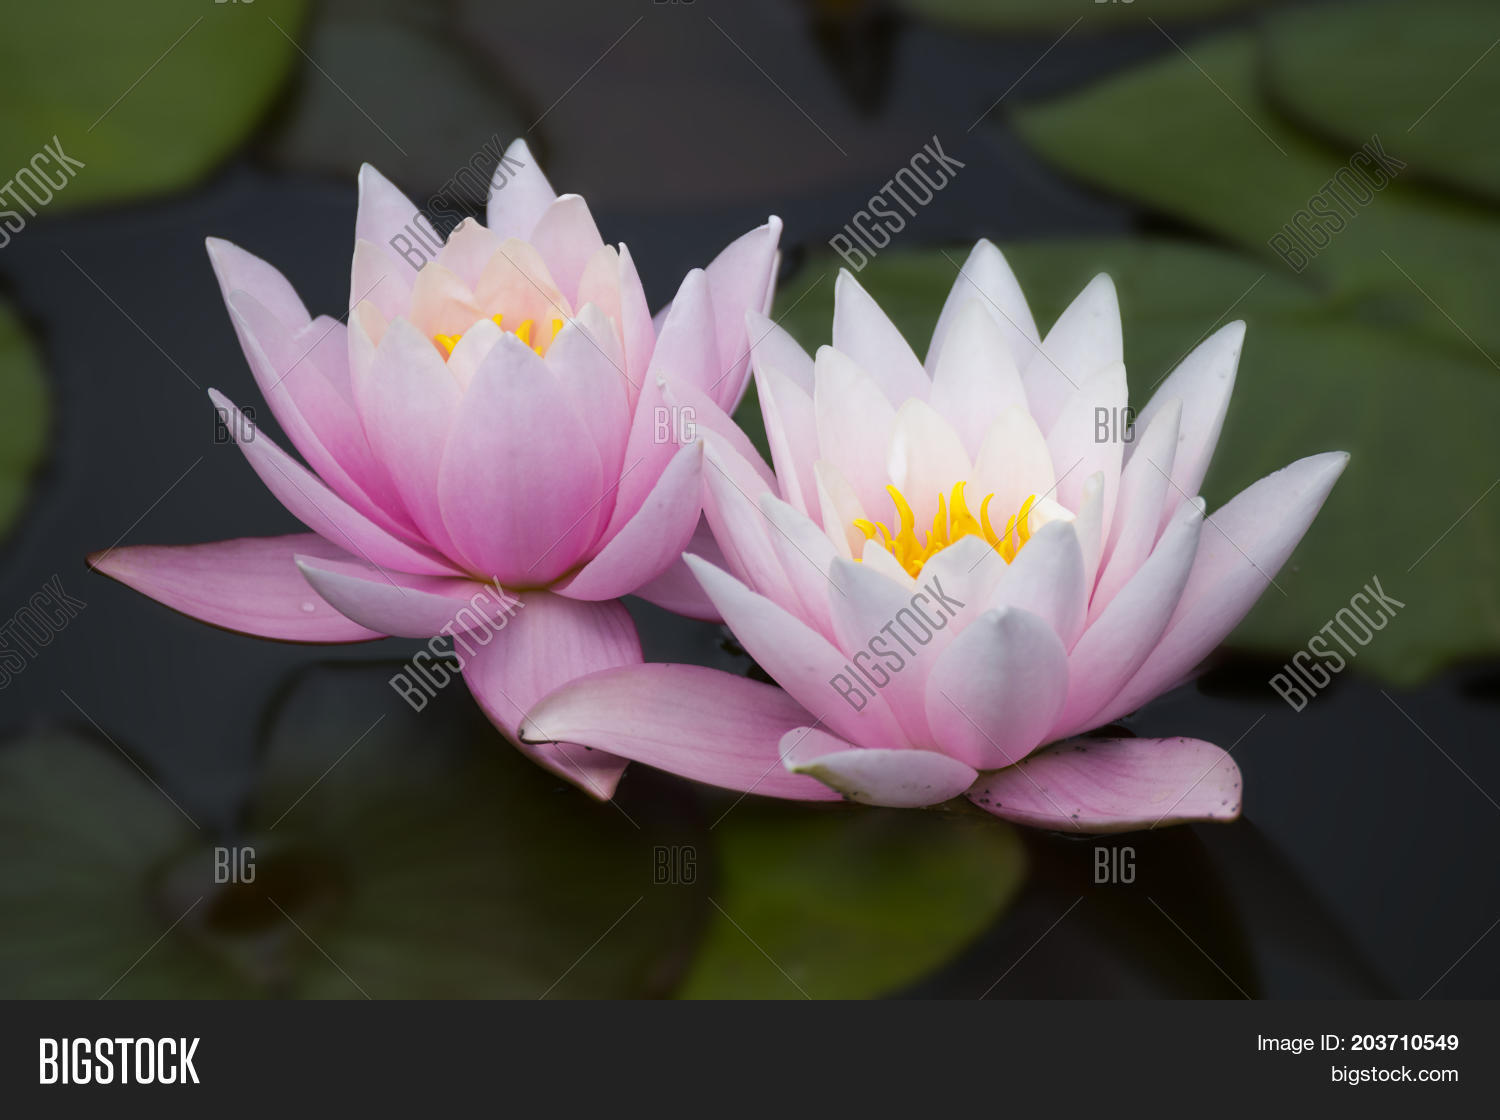 Two Pink Lotus Flowers Image Photo Free Trial Bigstock